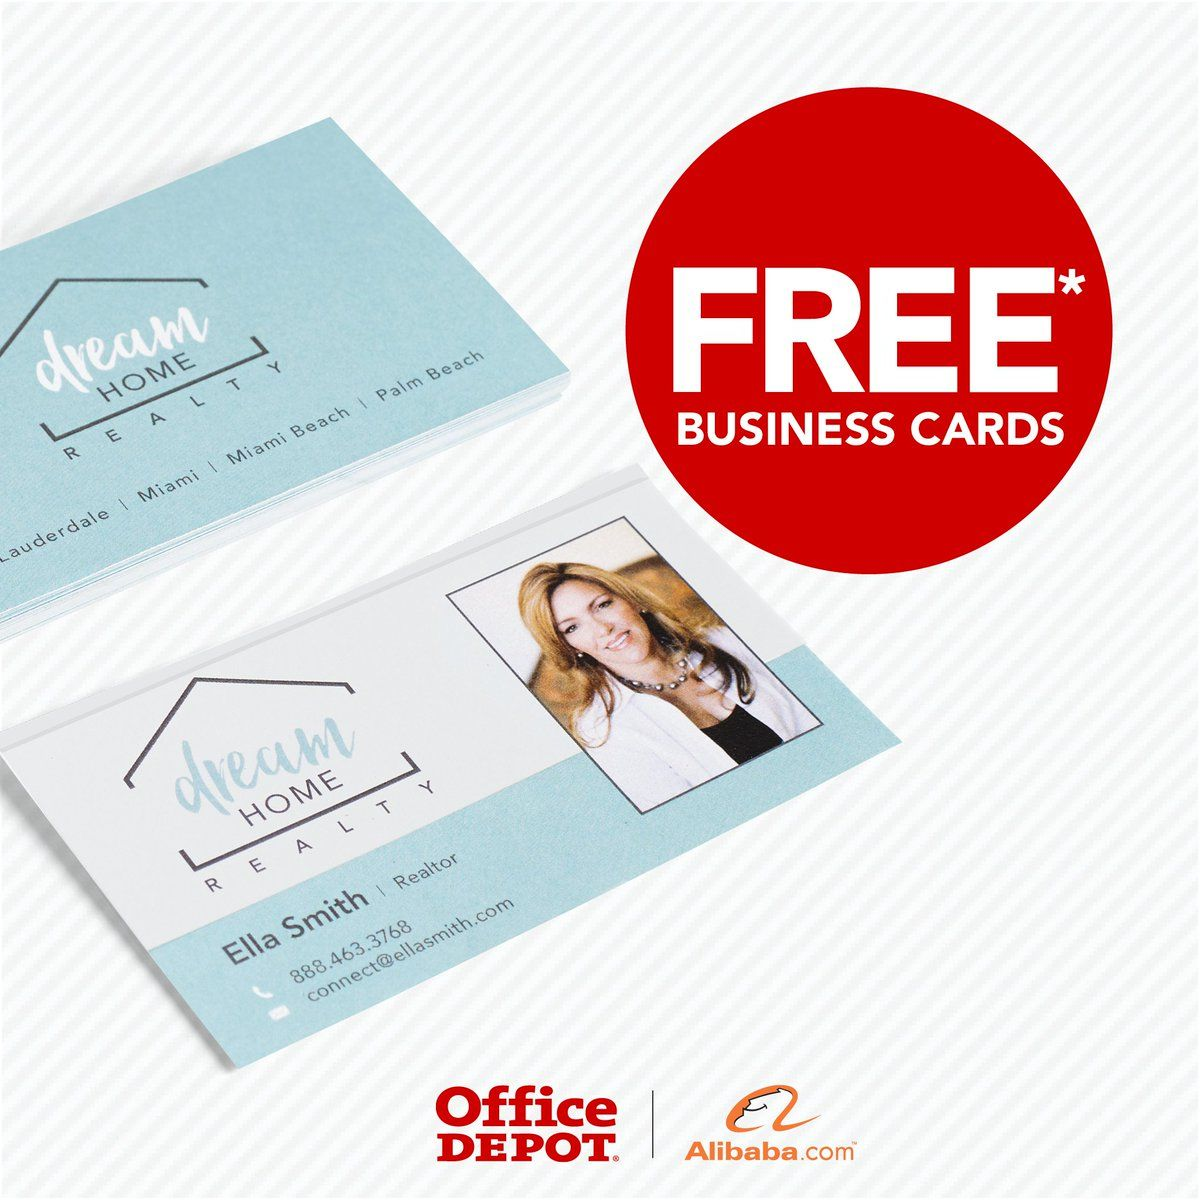 The Mesmerizing Order Business Cards Office Depot Same Day Coupon Code Inside Office Depot Business Card Template Images Below Is